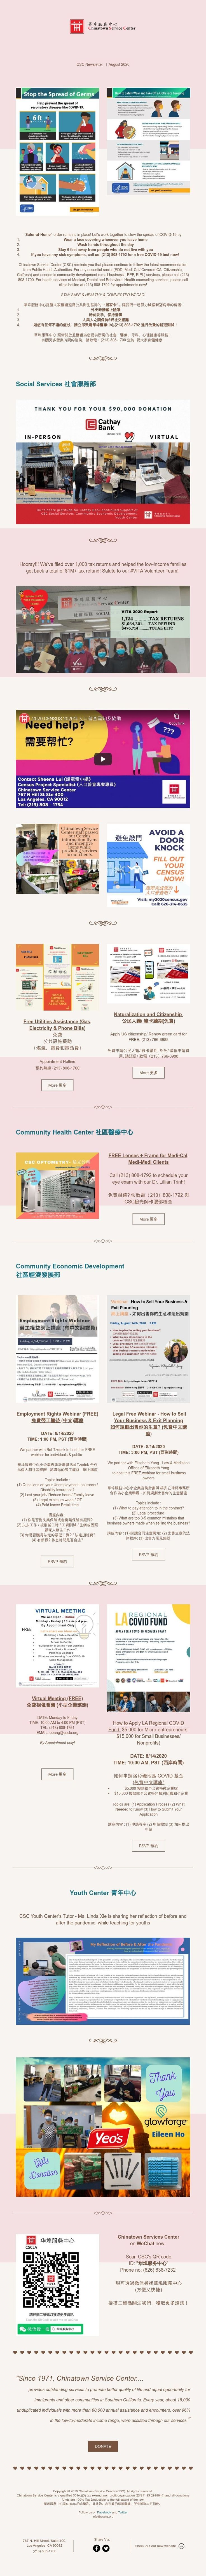 Pin On Csc Newsletters